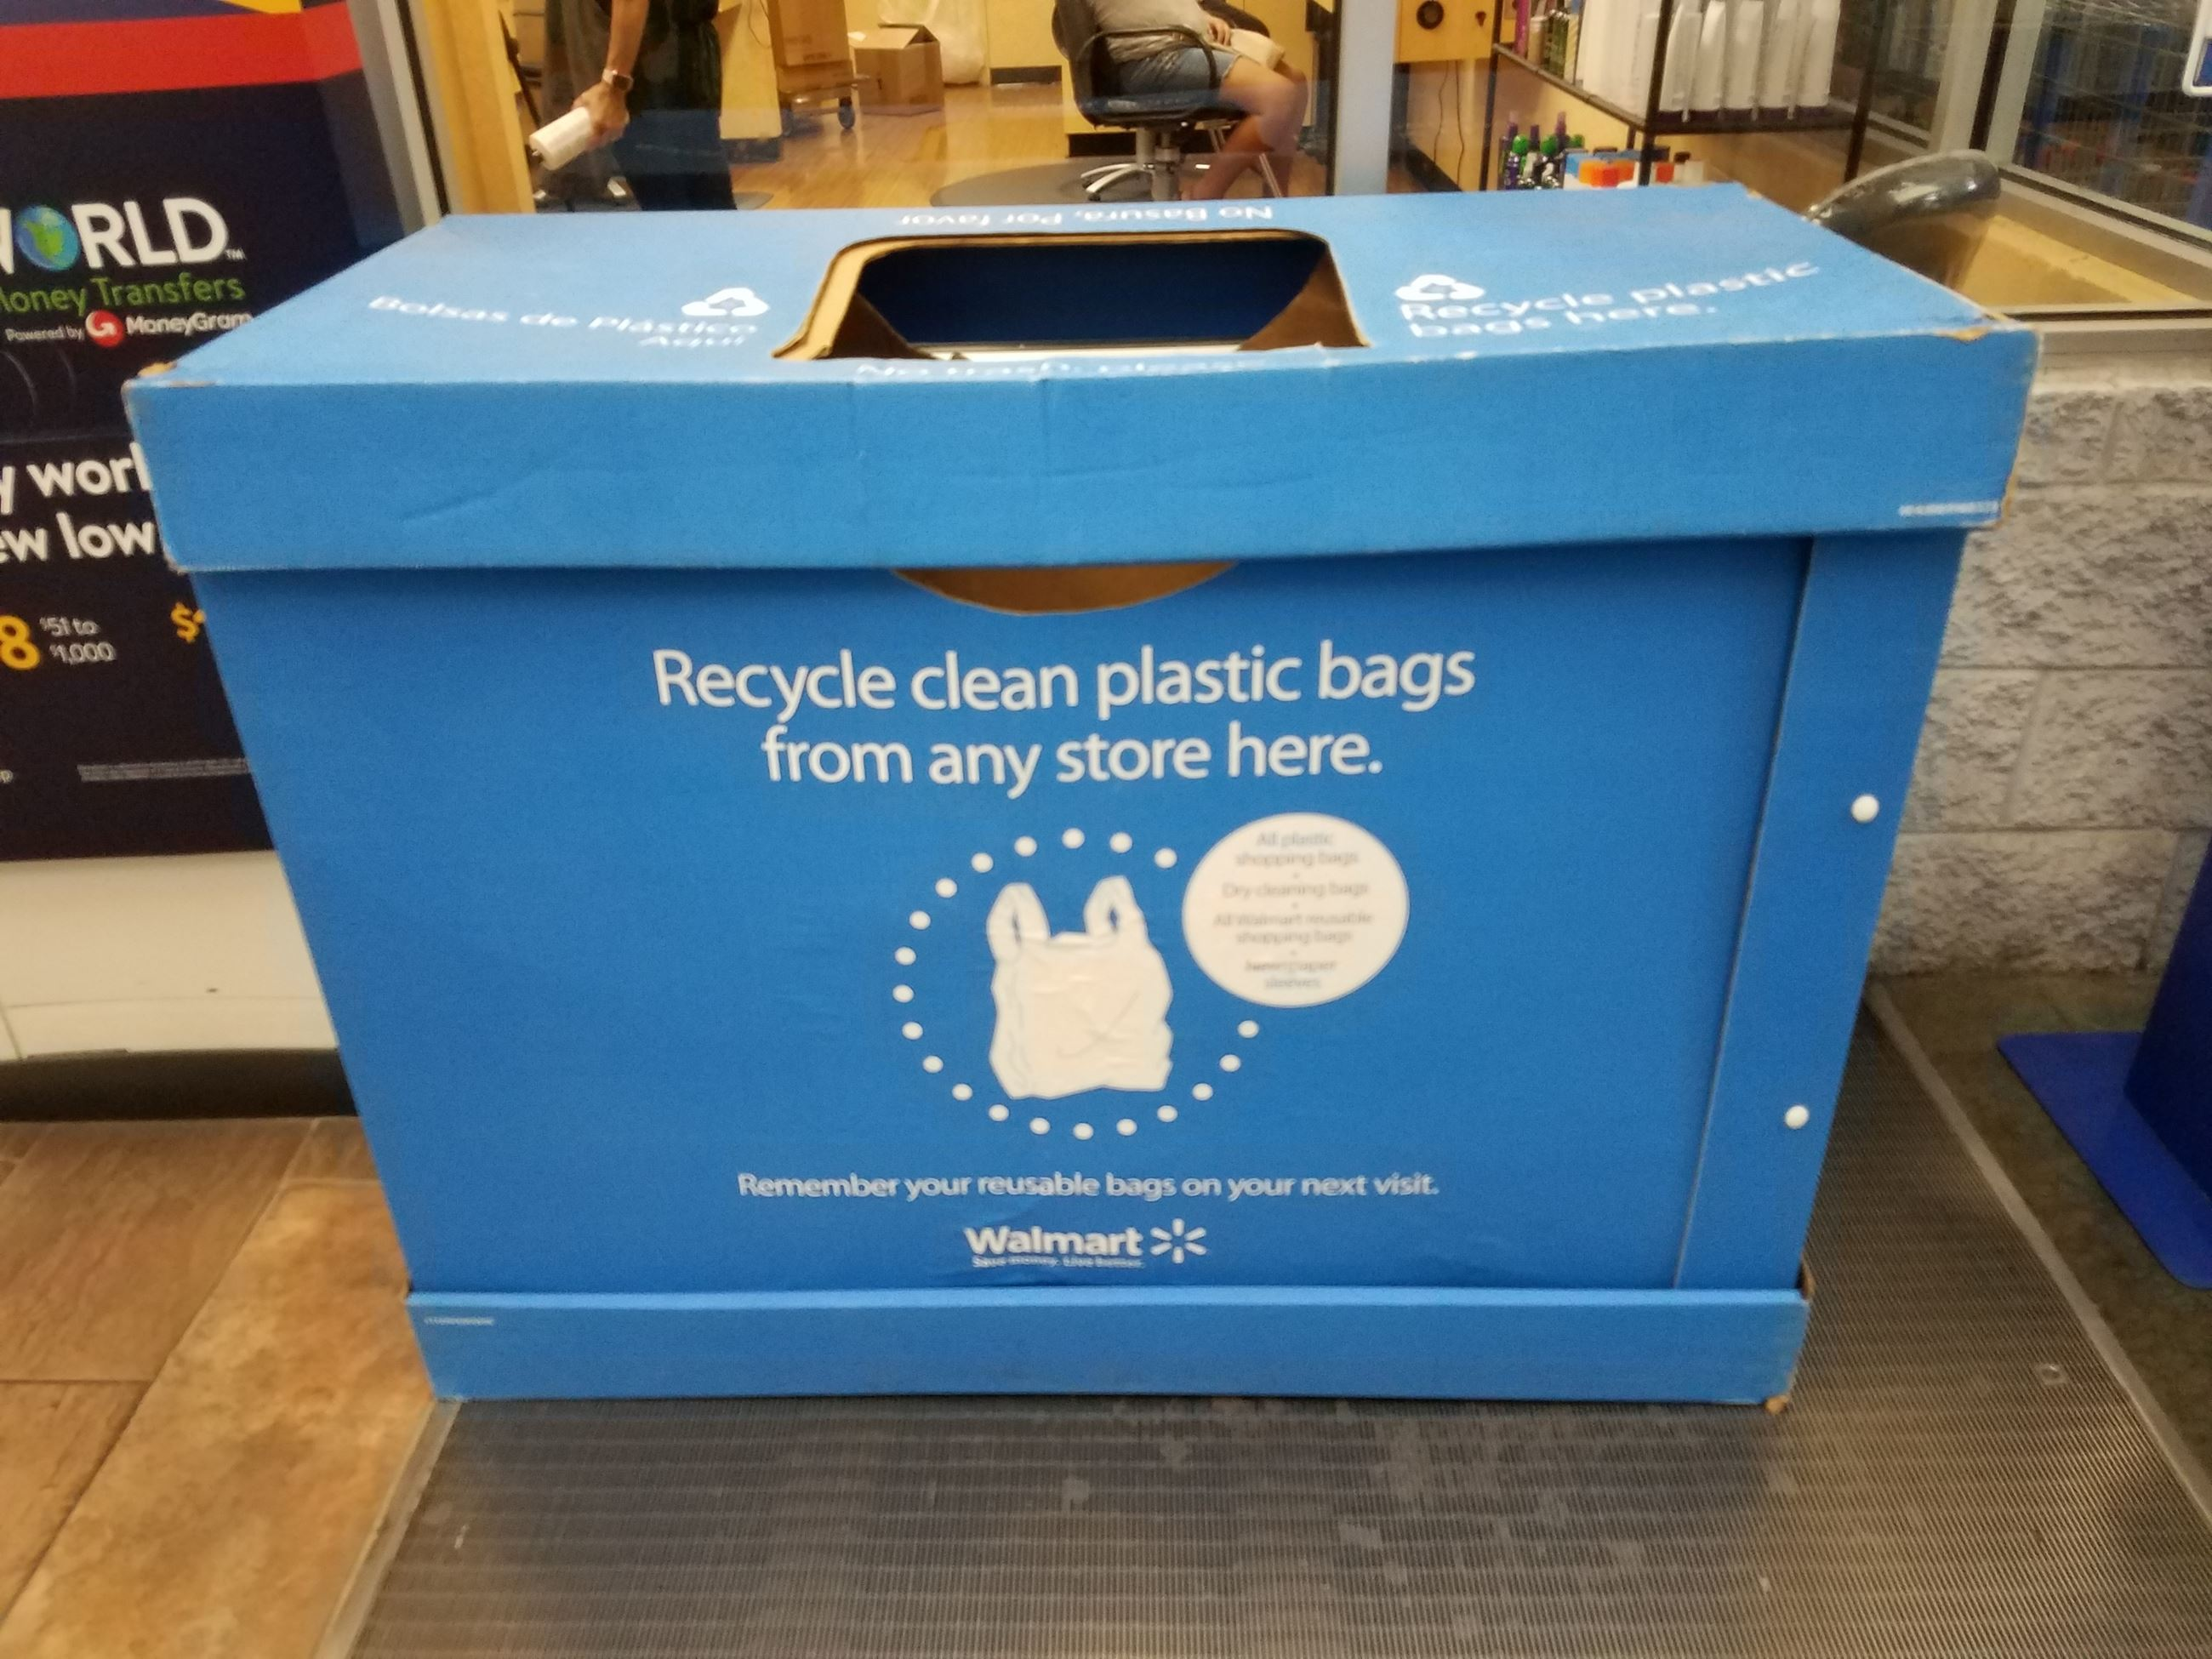 Recycling container at Wal-Mart